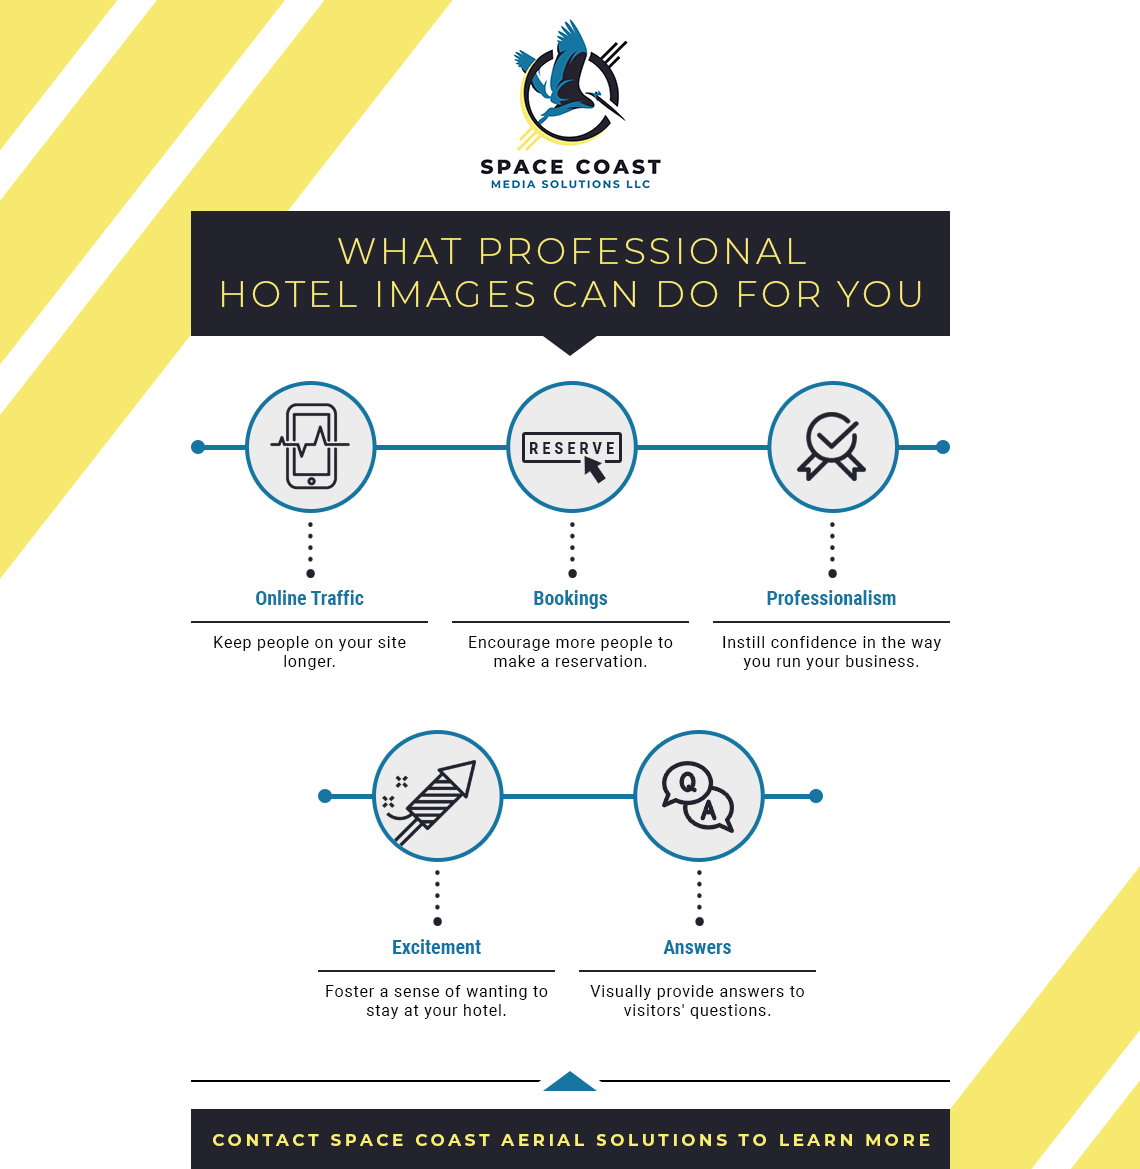 What Professional Hotel Images Can Do For You - infographic